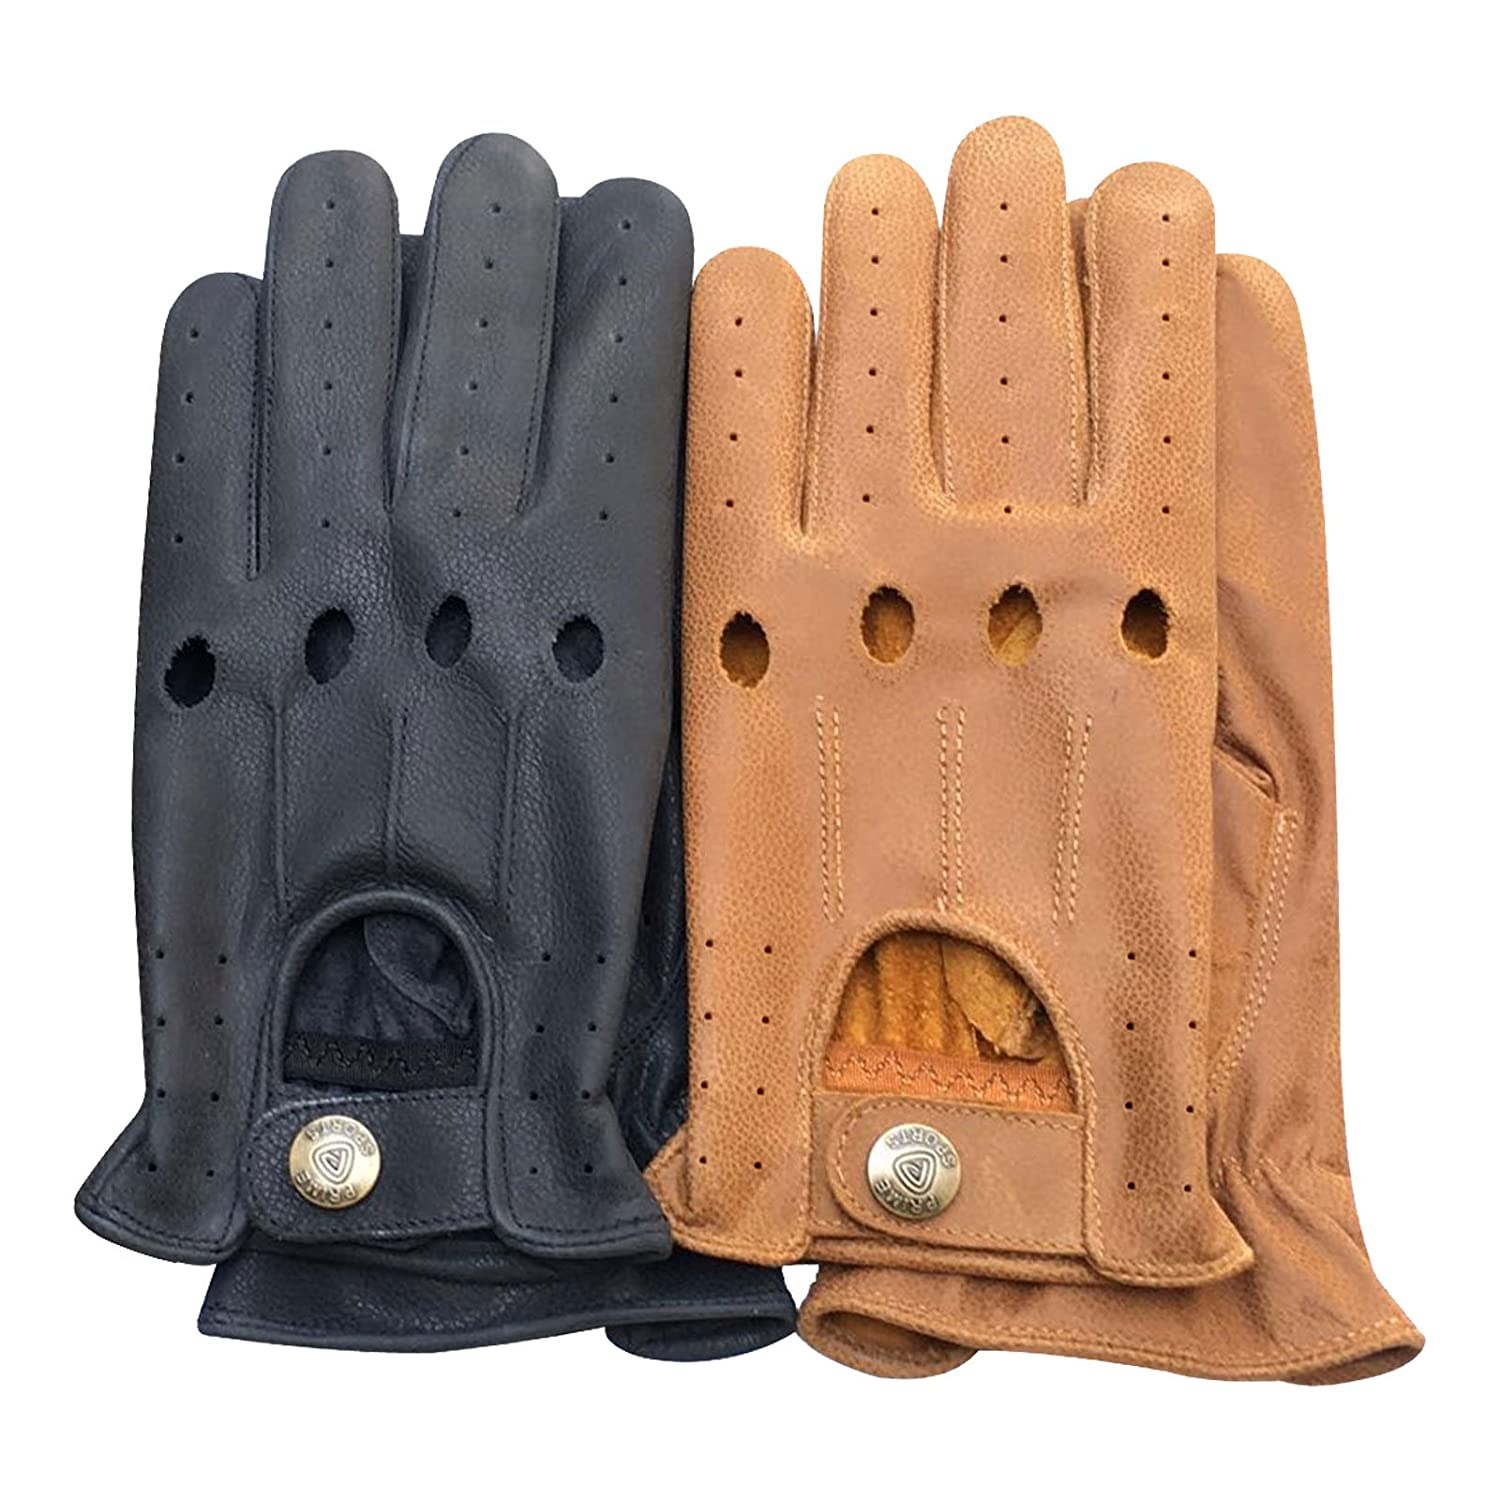 REAL KASHMIRA LEATHER MEN'S STYLISH FASHION DRIVING GLOVES PRIME LEATHER